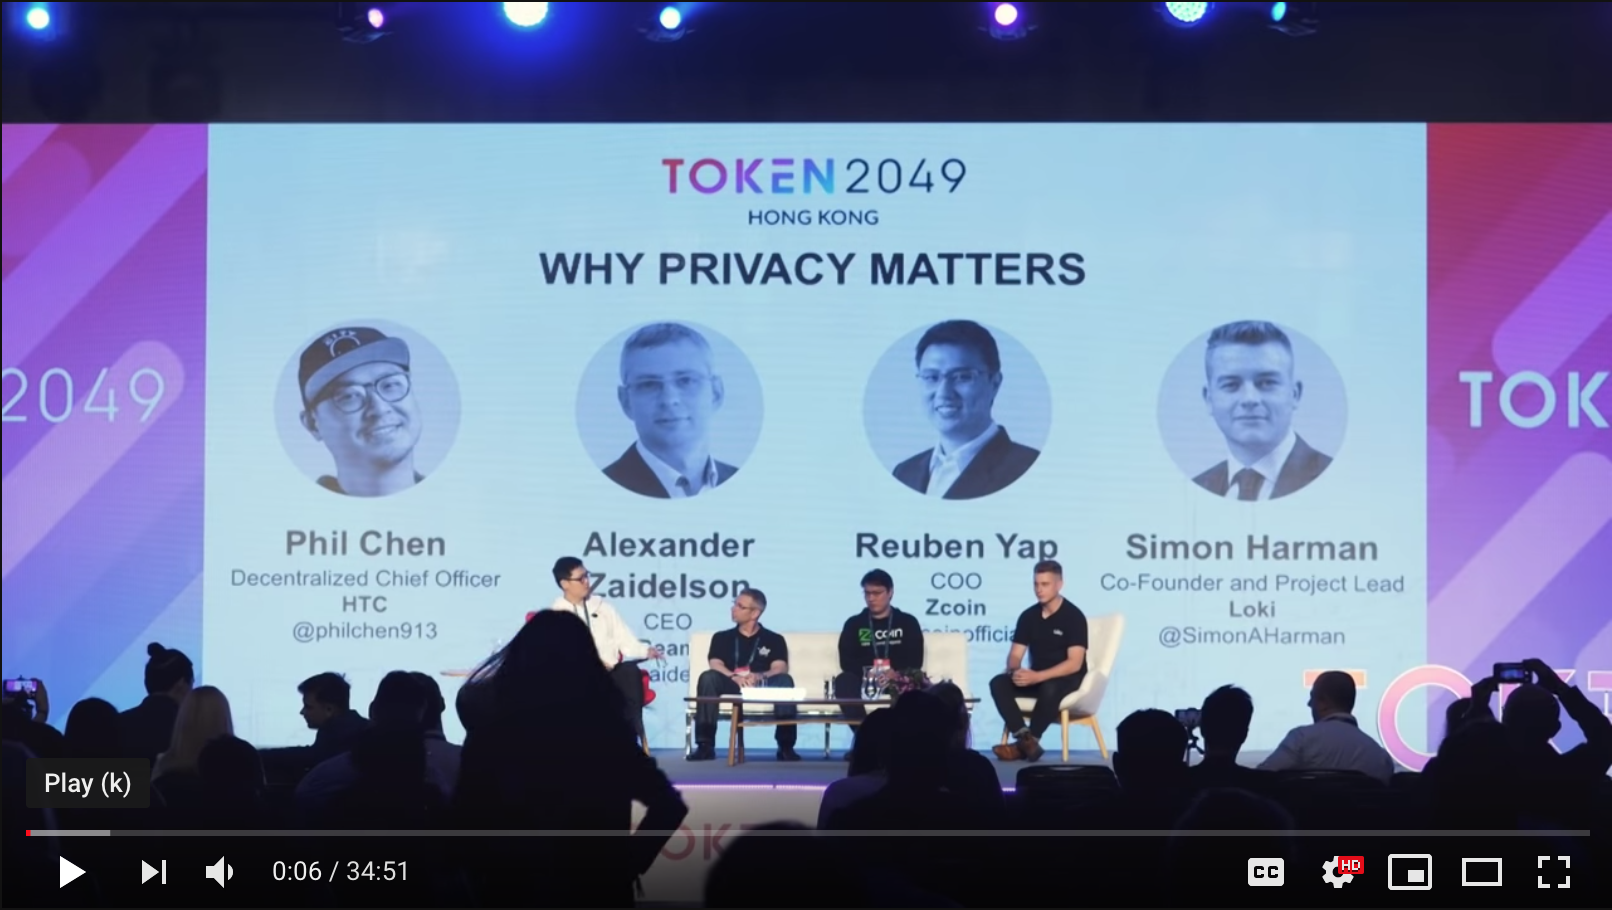 TOKEN2049 - Why Privacy Matters